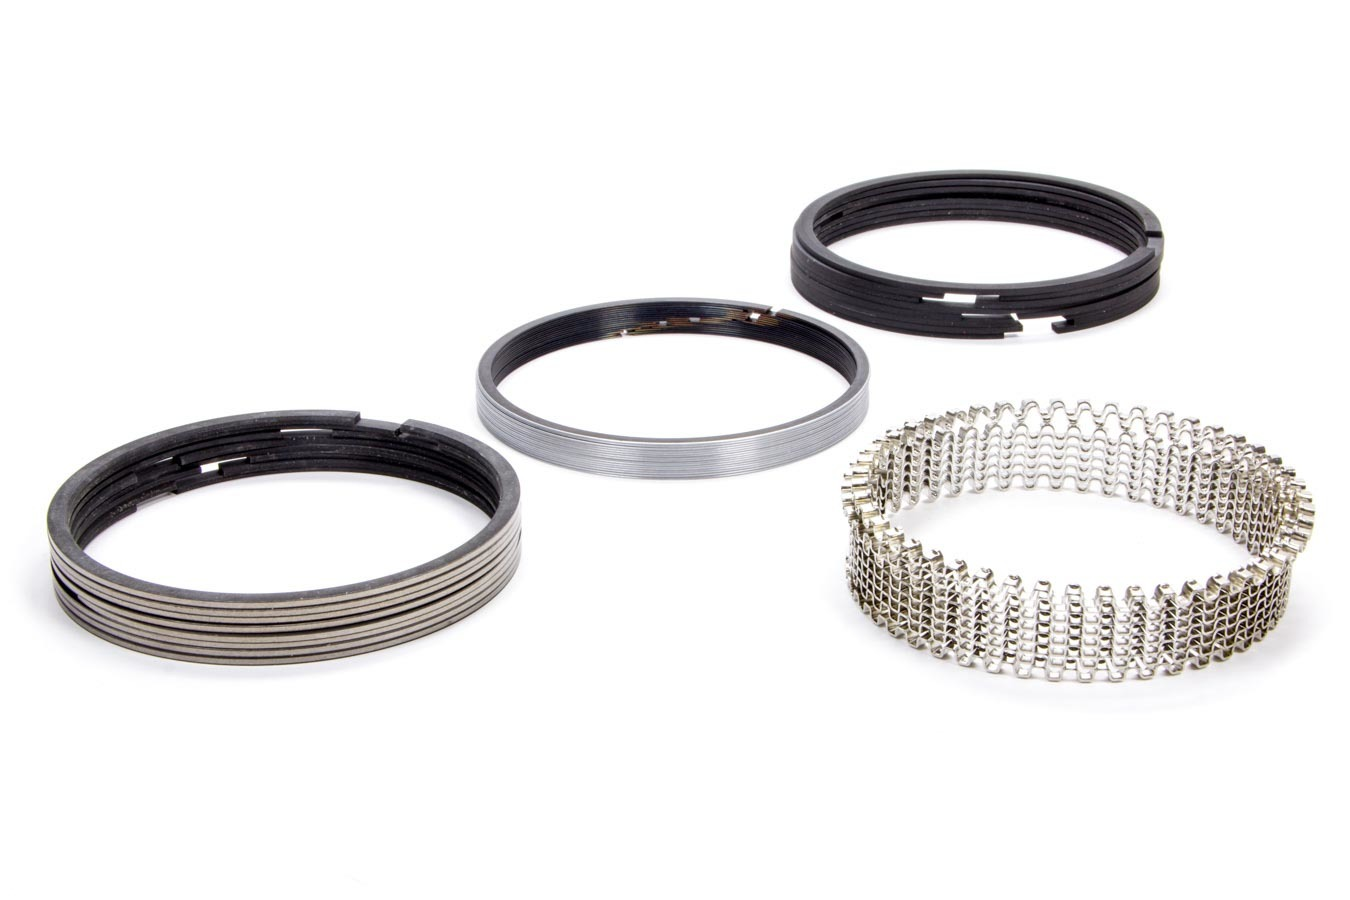 Hastings CM5534040 Piston Rings, Claimer, 4.165 in Bore, 1/16 x 1/16 x 3/16 in Thick, Standard Tension, Plasma Moly, 8 Cylinder, Kit